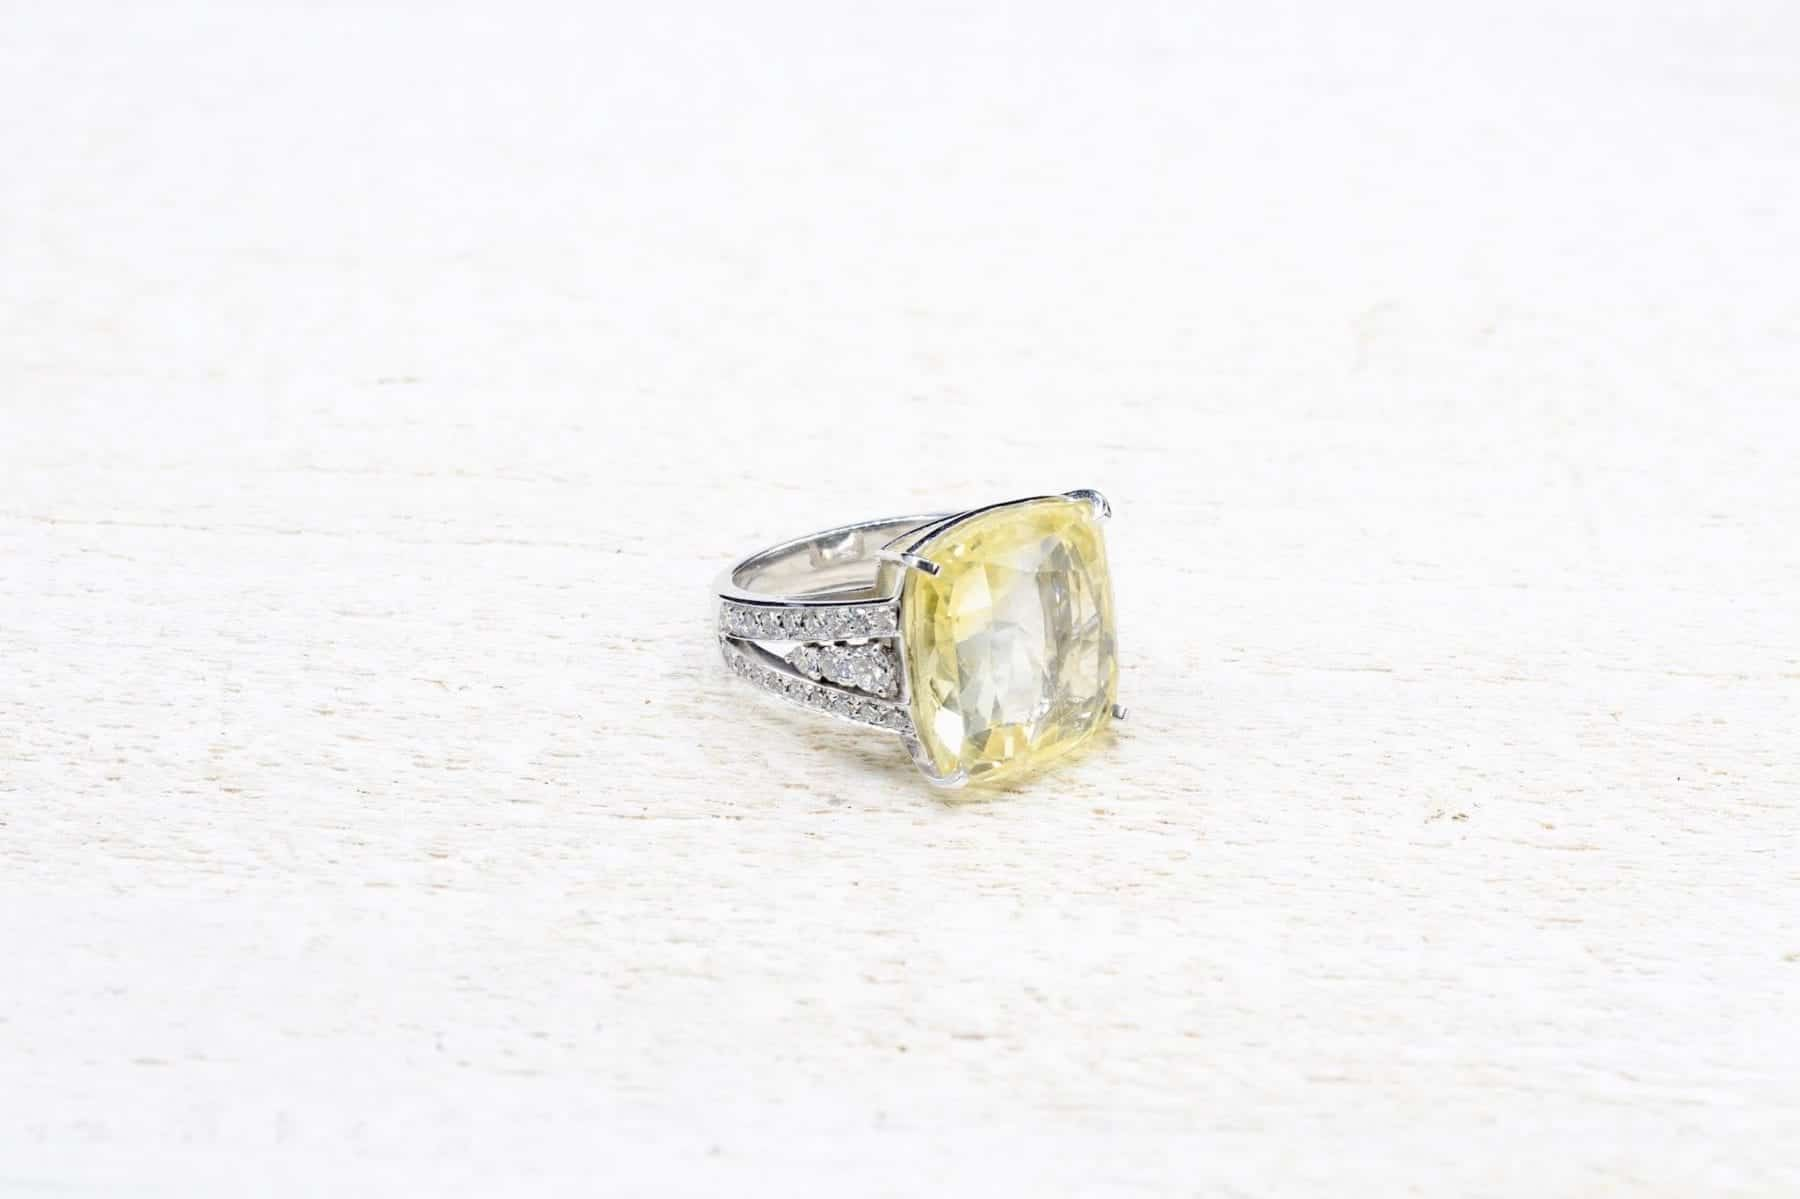 Bague saphir jaune en or blanc 18k